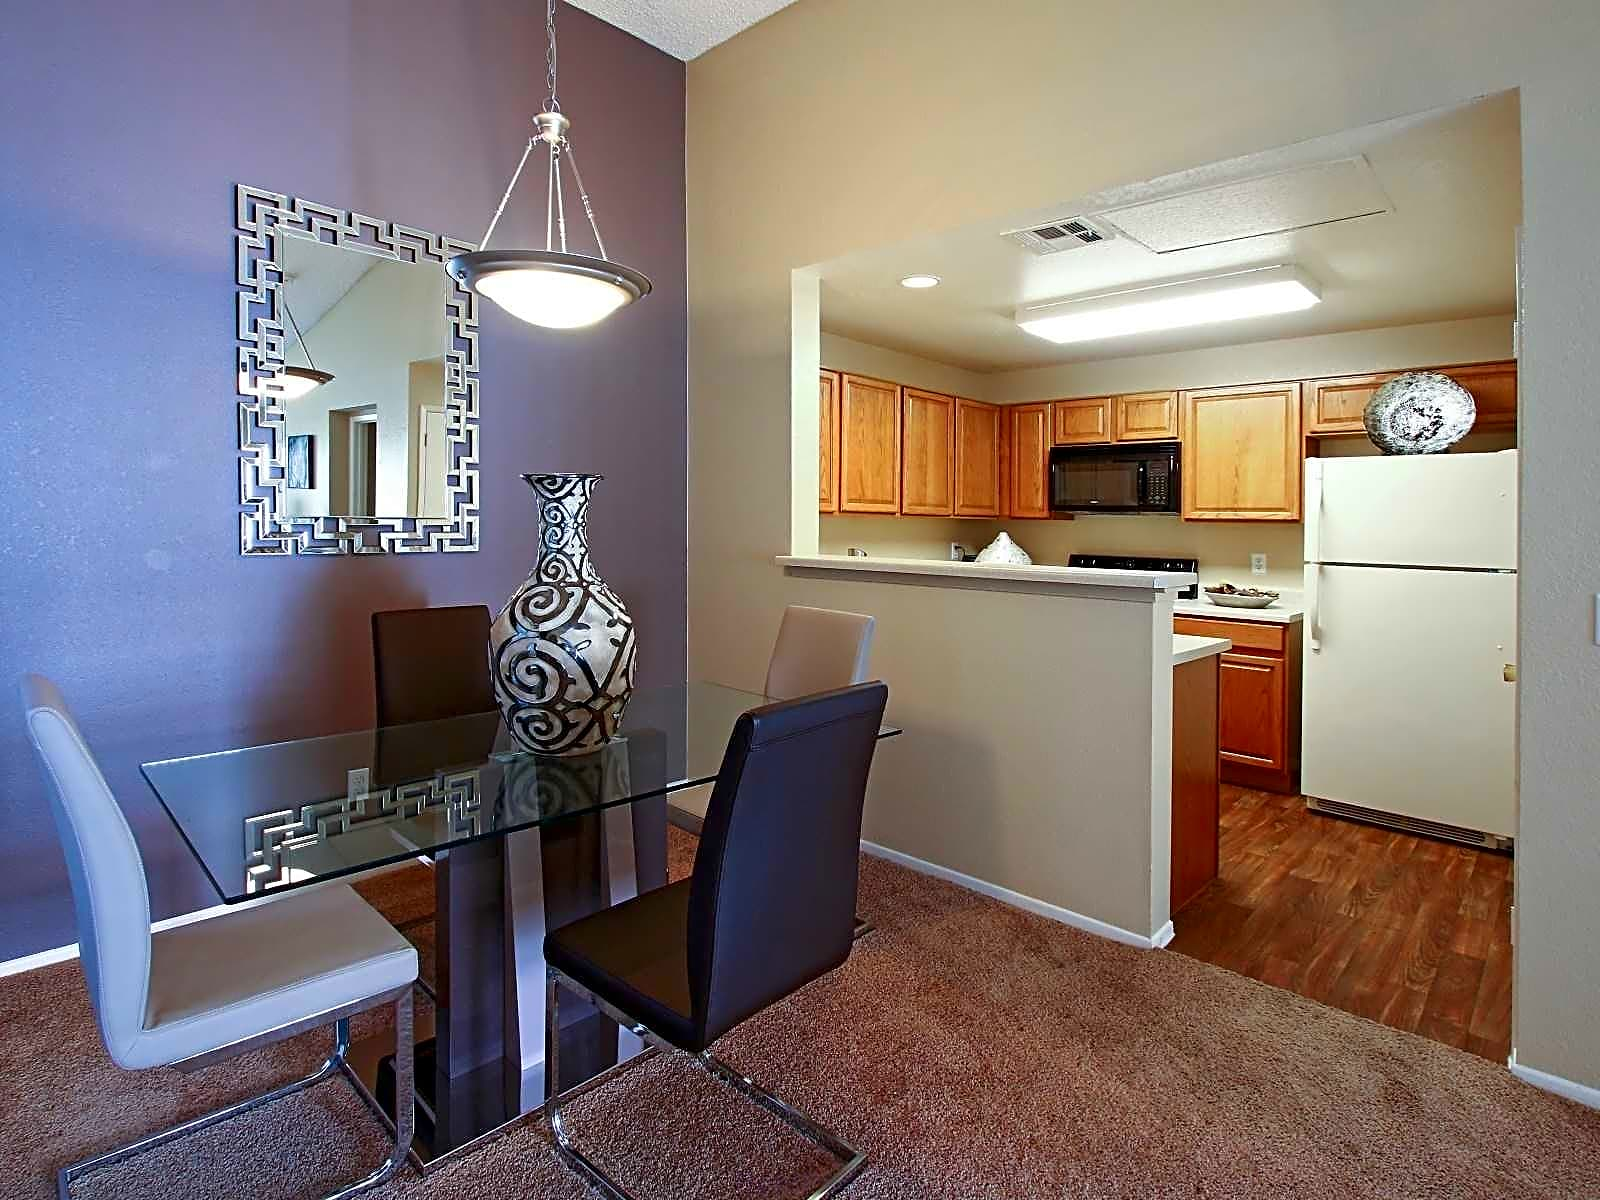 Apartments Near UNLV Sahara West Town Homes & Apartments for University of Nevada-Las Vegas Students in Las Vegas, NV